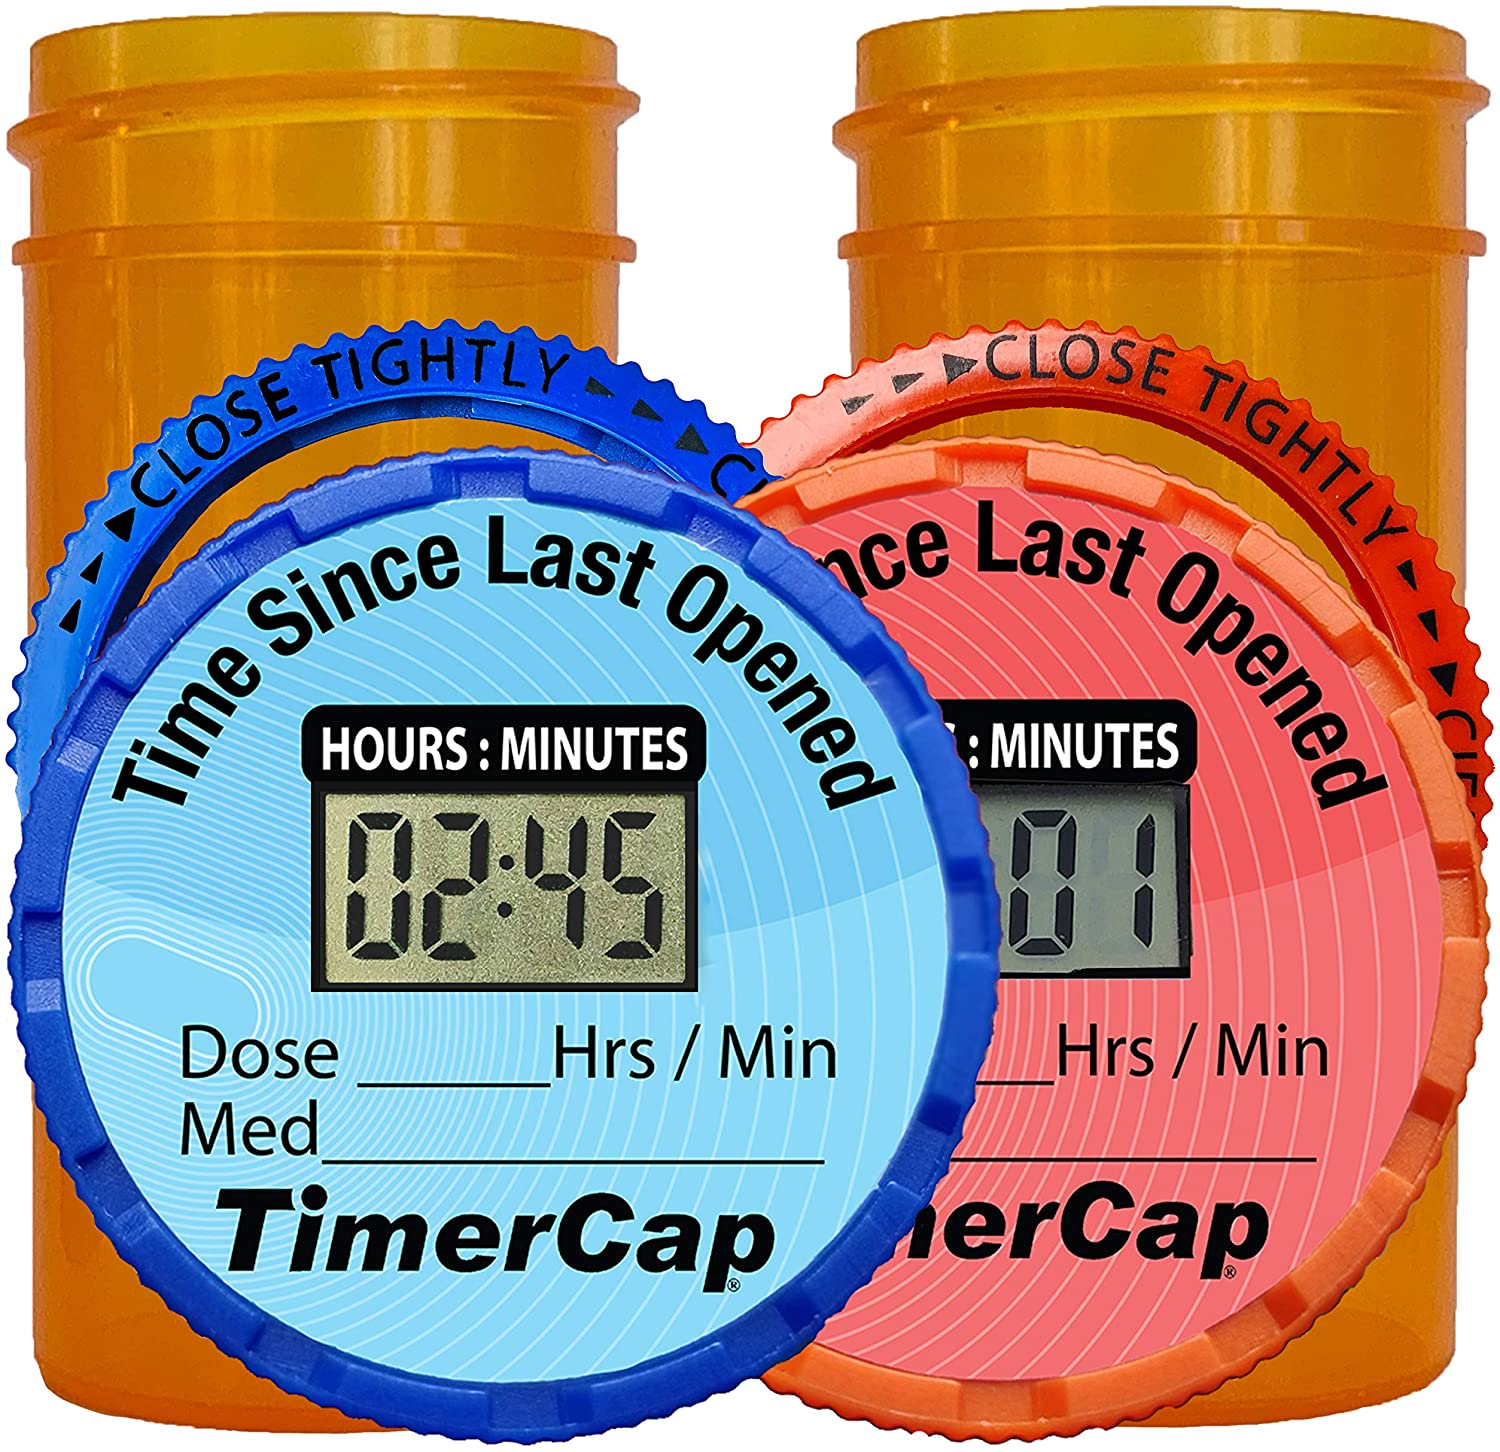 TimerCap Automatically Displays Time Since Last Opened - Built-in Stopwatch Smart Pill Bottle Cap Medication Reminder Case (Qty 2 - Standard 1.8 oz White Opaque Bottles) EZ -Twist/CRC: Health & Personal Care